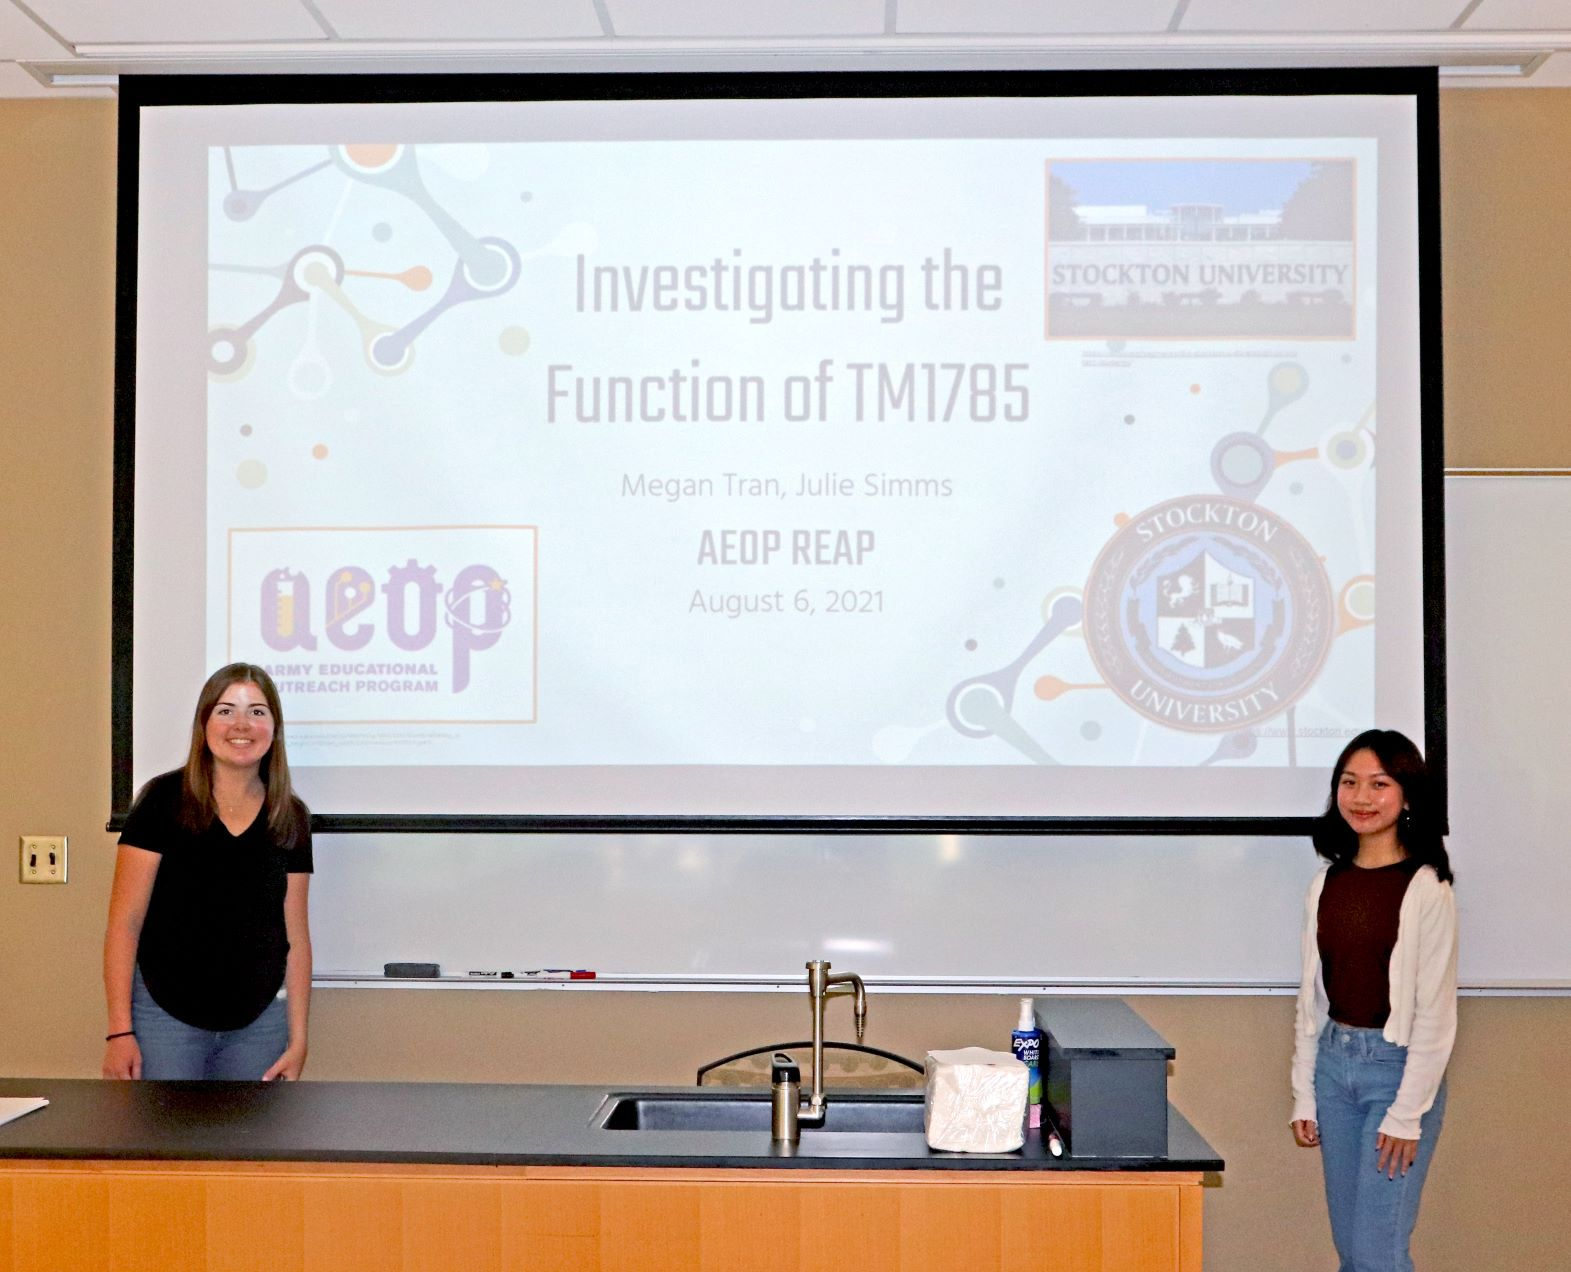 Julie Simms and Megan Tran present their STEM research at the Research and Engineering Apprenticeship (REAP) Symposium at Stockton University.